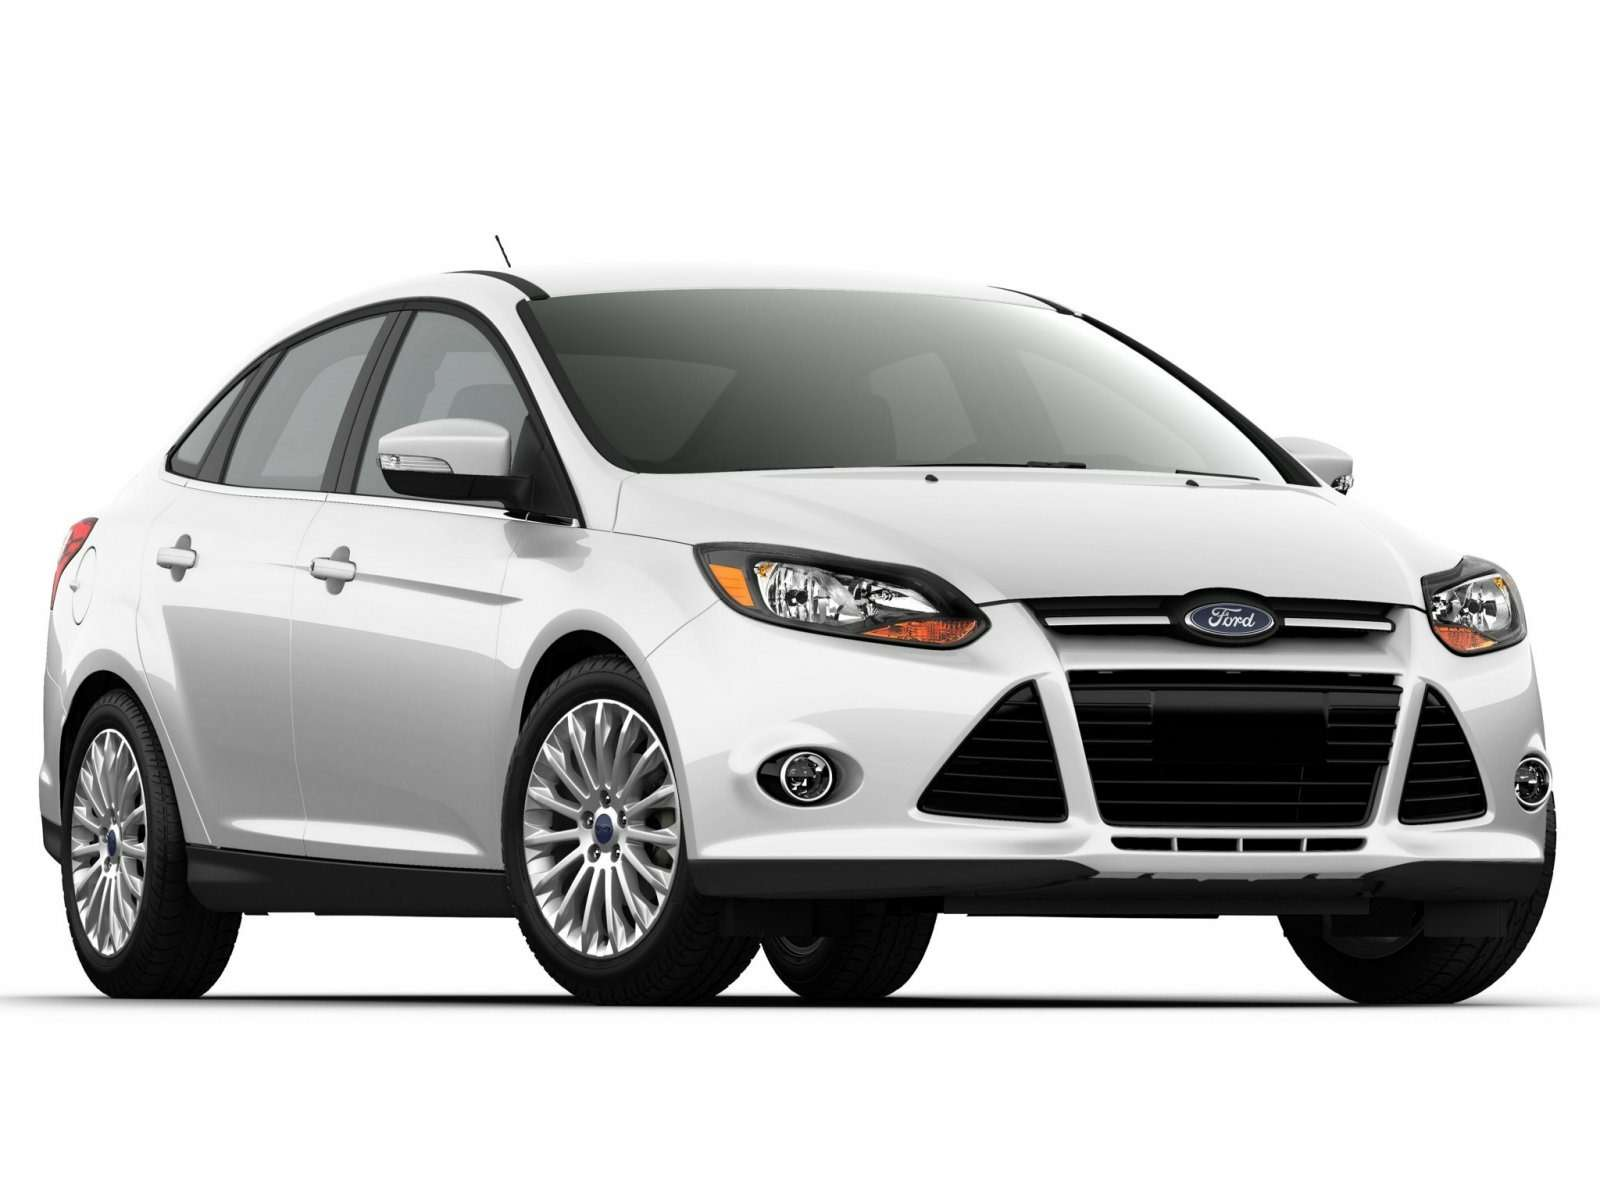 Ford_Focus_Sedan_2010